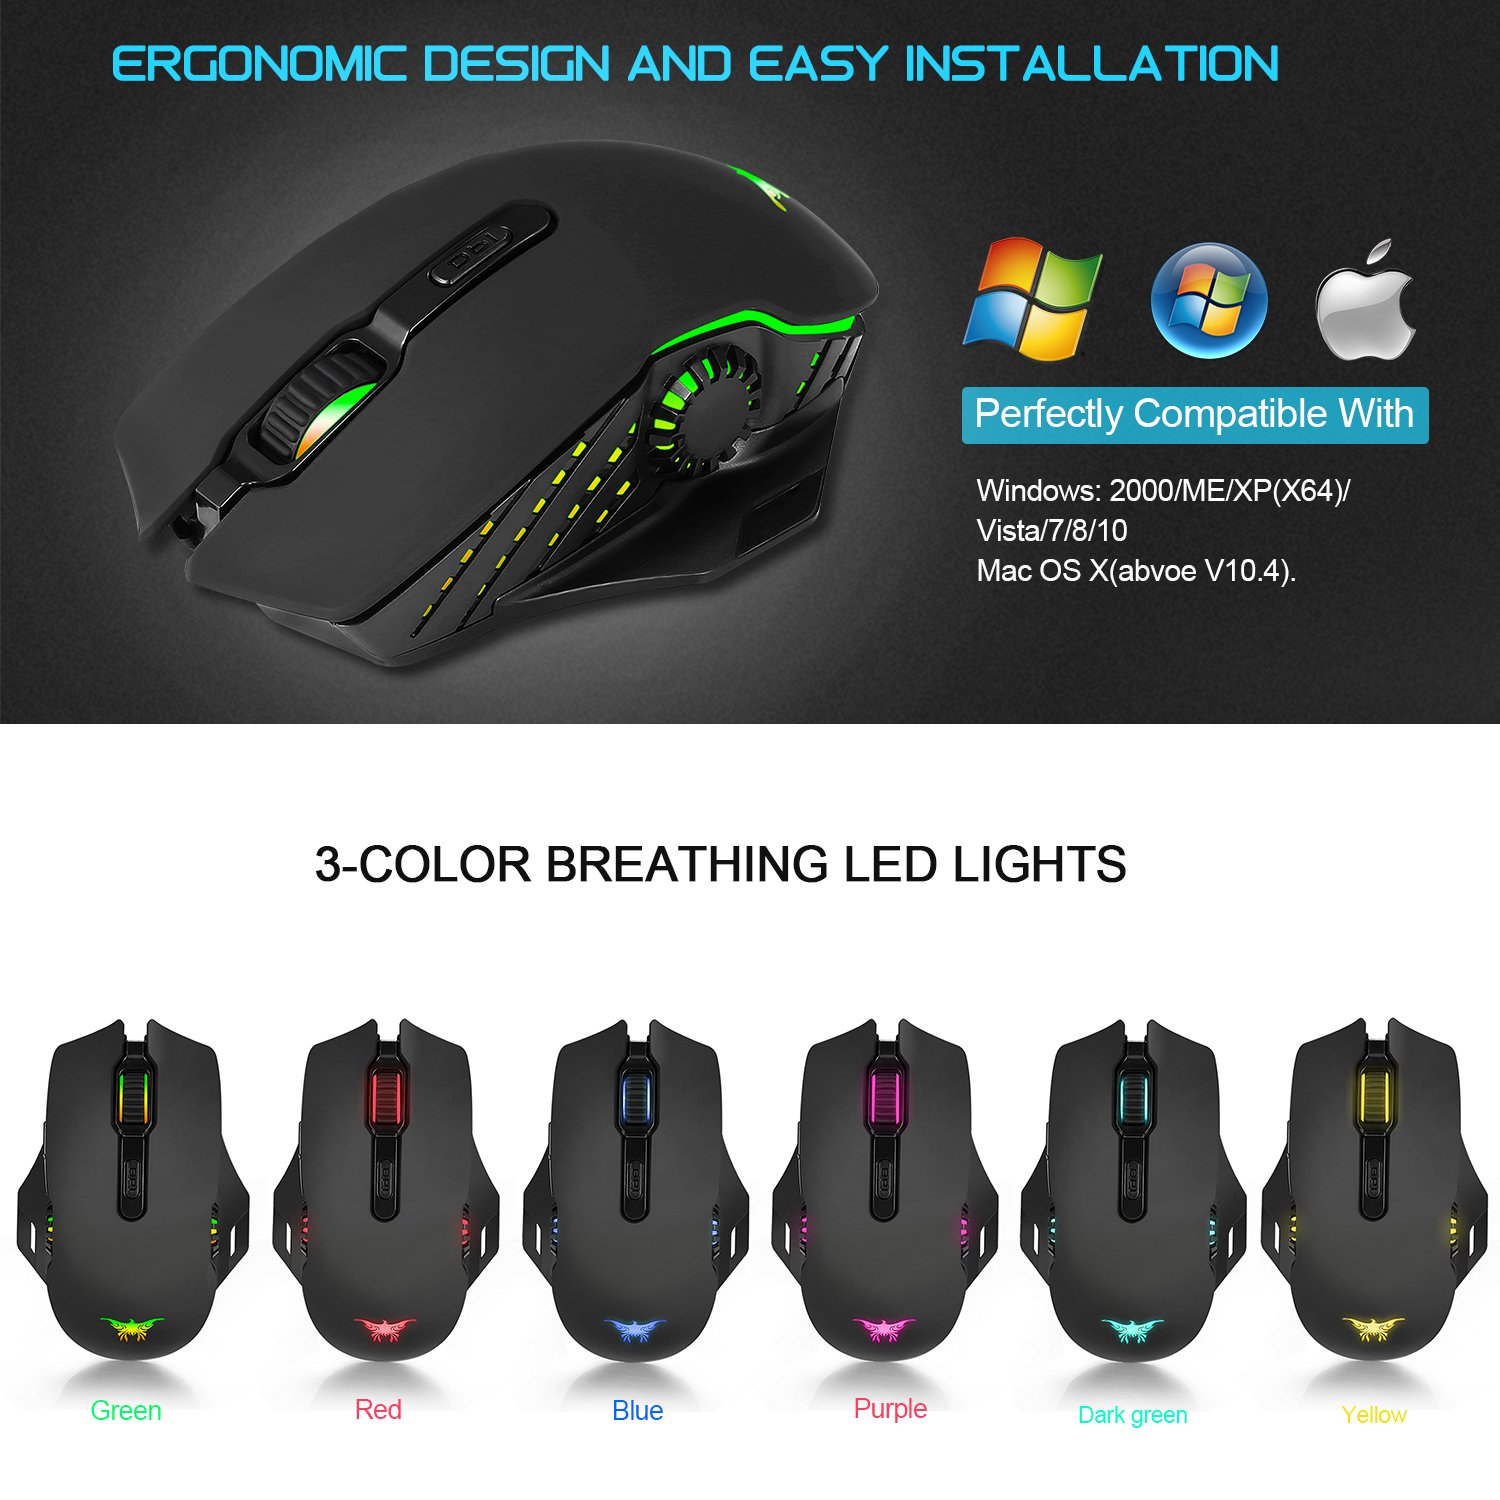 JinSun Rechargeable Laptop Wireless Gaming Mouse 2 in 1 Wireless & Wired Optical Mice with USB, 5 Buttons, 6 Colors Breathing Lights for PC and Mac, 6 Adjustable DPI Levels for Laptop Mac Pro and PC by JinSun (Image #4)